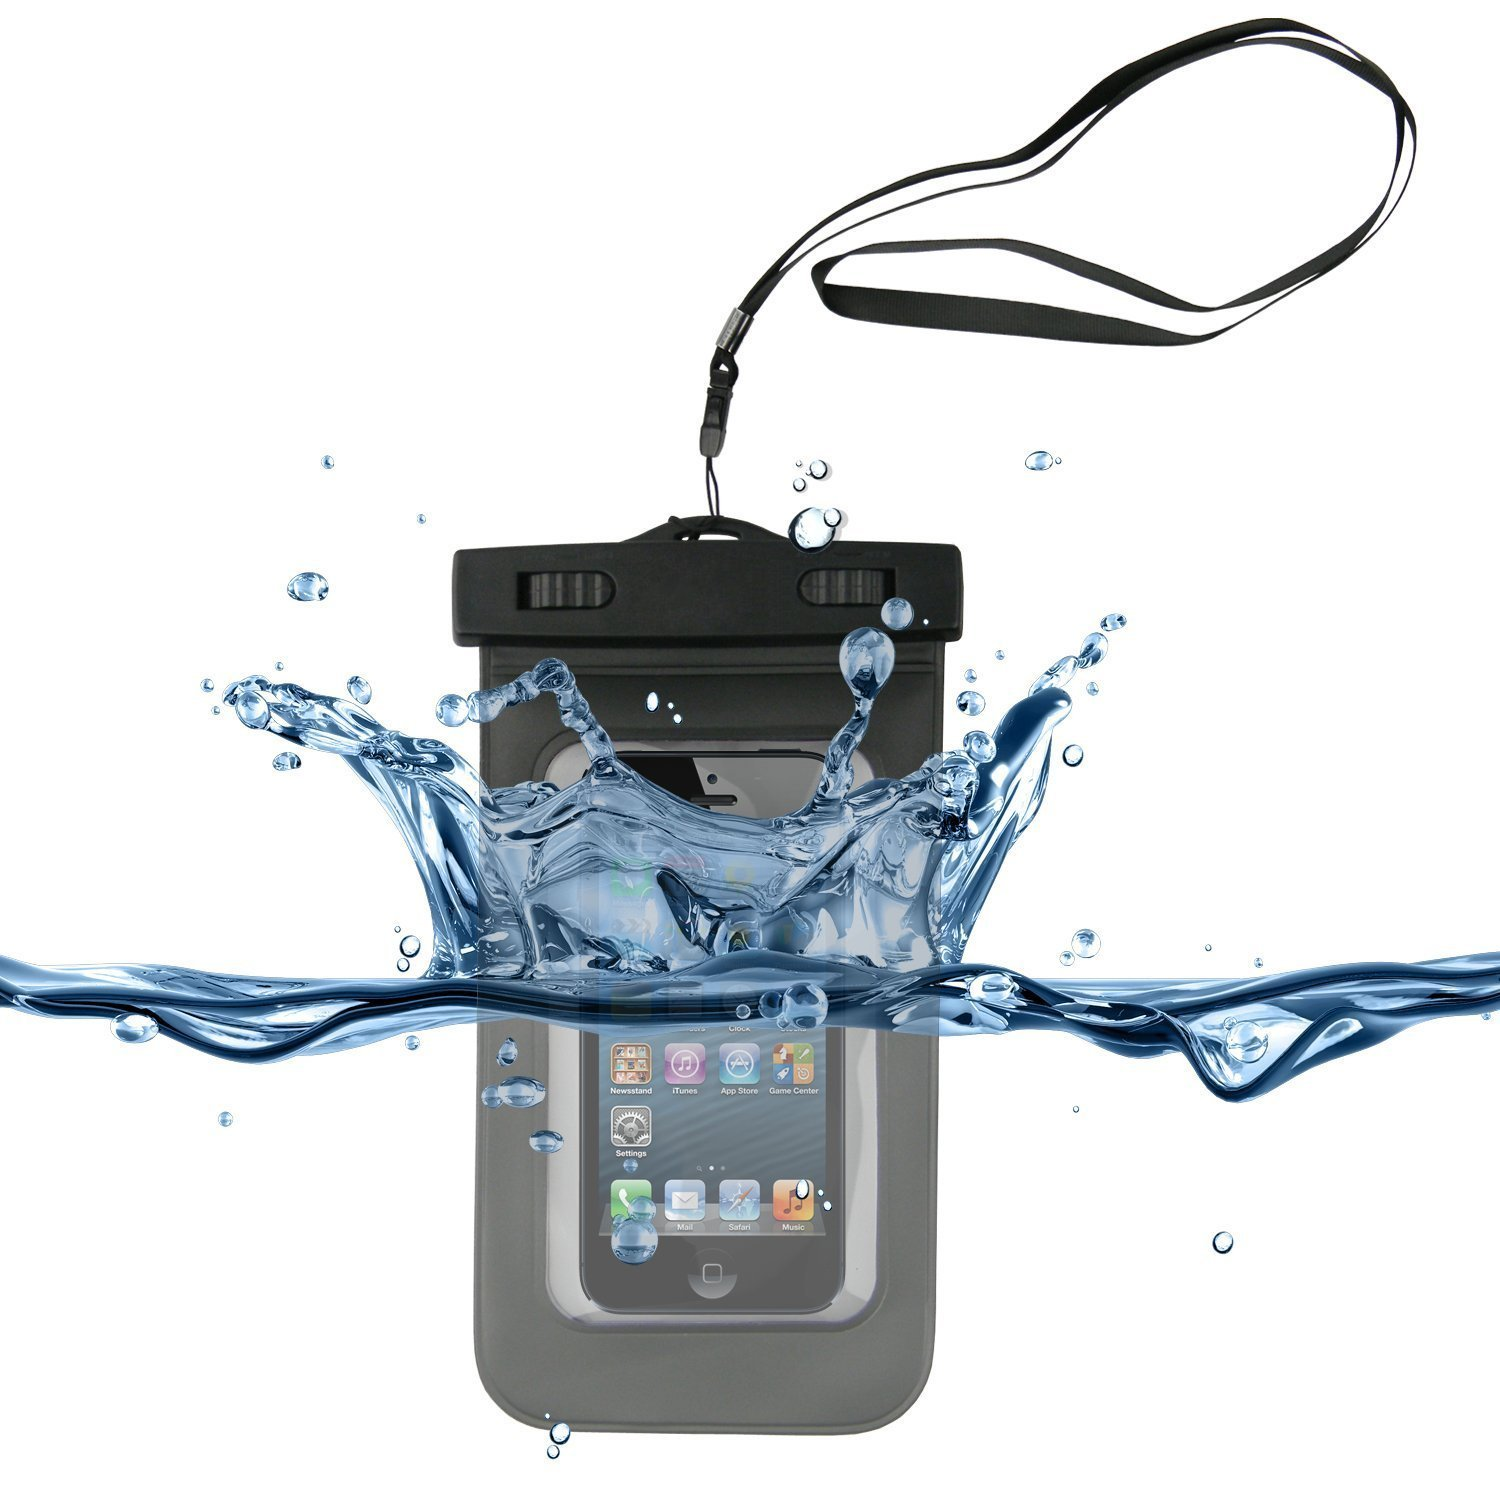 Universal Waterproof Carrying Bag Case Pouch for Cell Phone iPhone 6 6S 6S 7 8 Plus iPhone X , Galaxy S9 S9 Plus S8 S8 Plus S7 S6 S5 S4 S3 S2, Note 8 5 3 2 1, HTC, Motorola, Nokia, Sony and more